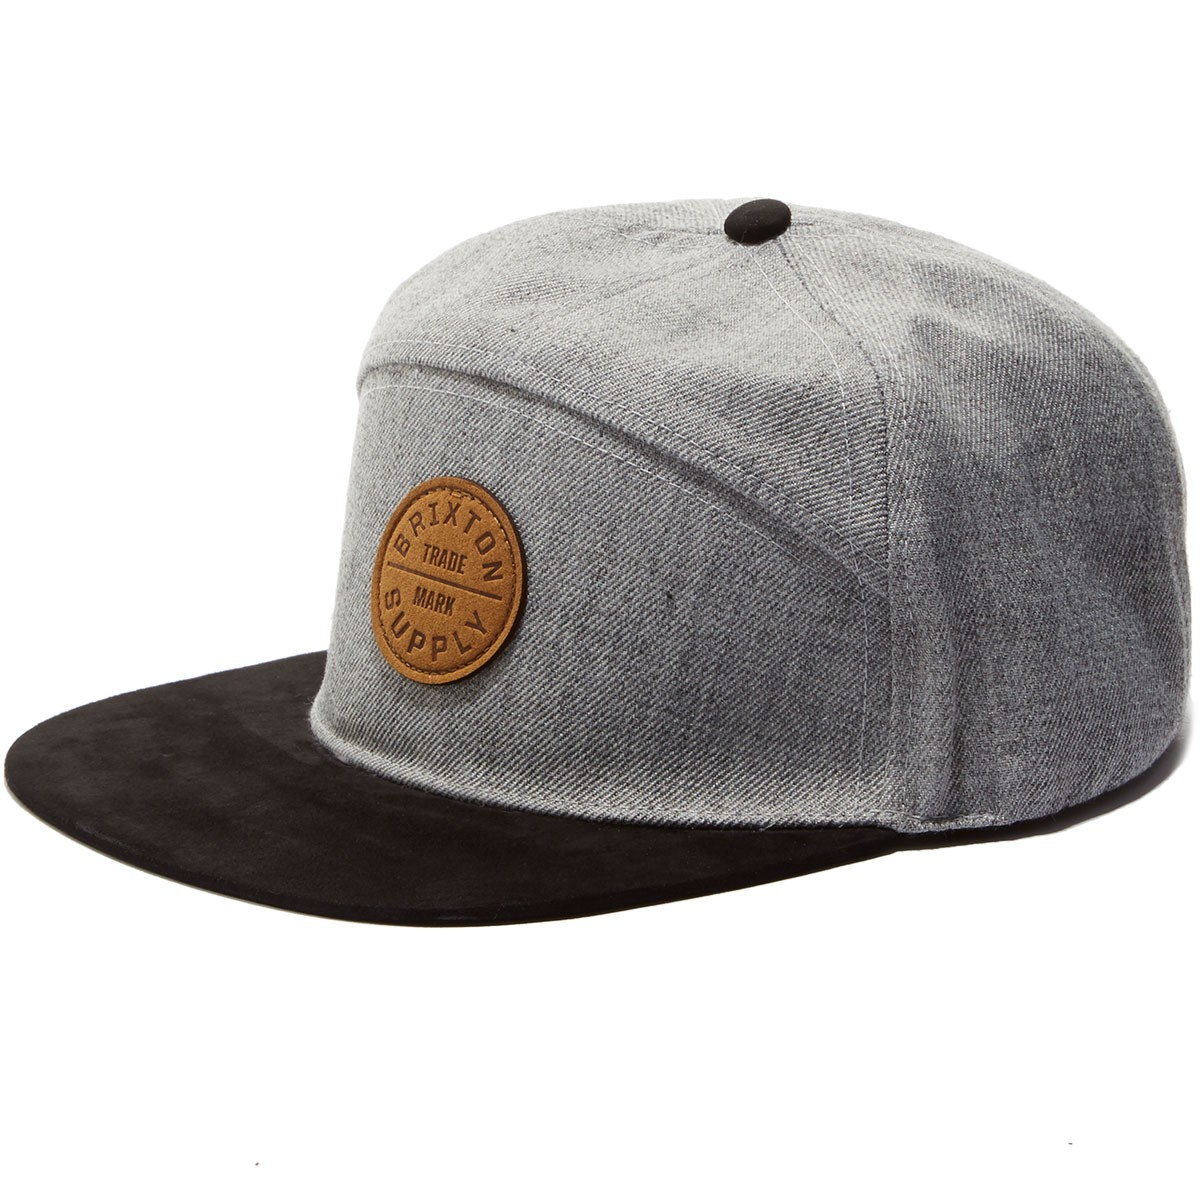 Brixton Oath 7 Panel Hat - Light Heather Grey/Black